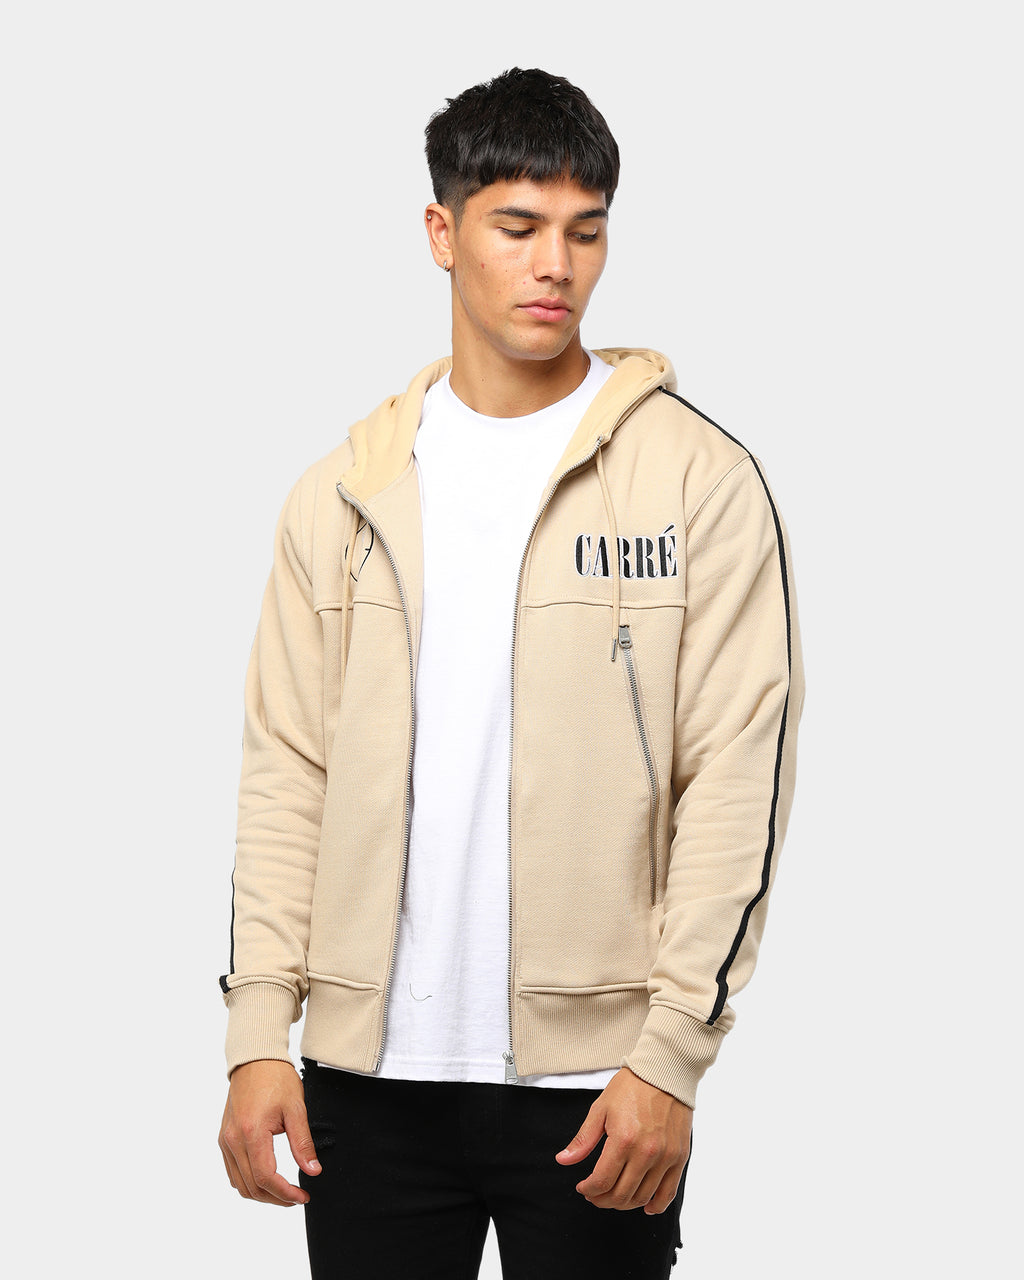 Carré Cible Zip Up Hoodie Stone